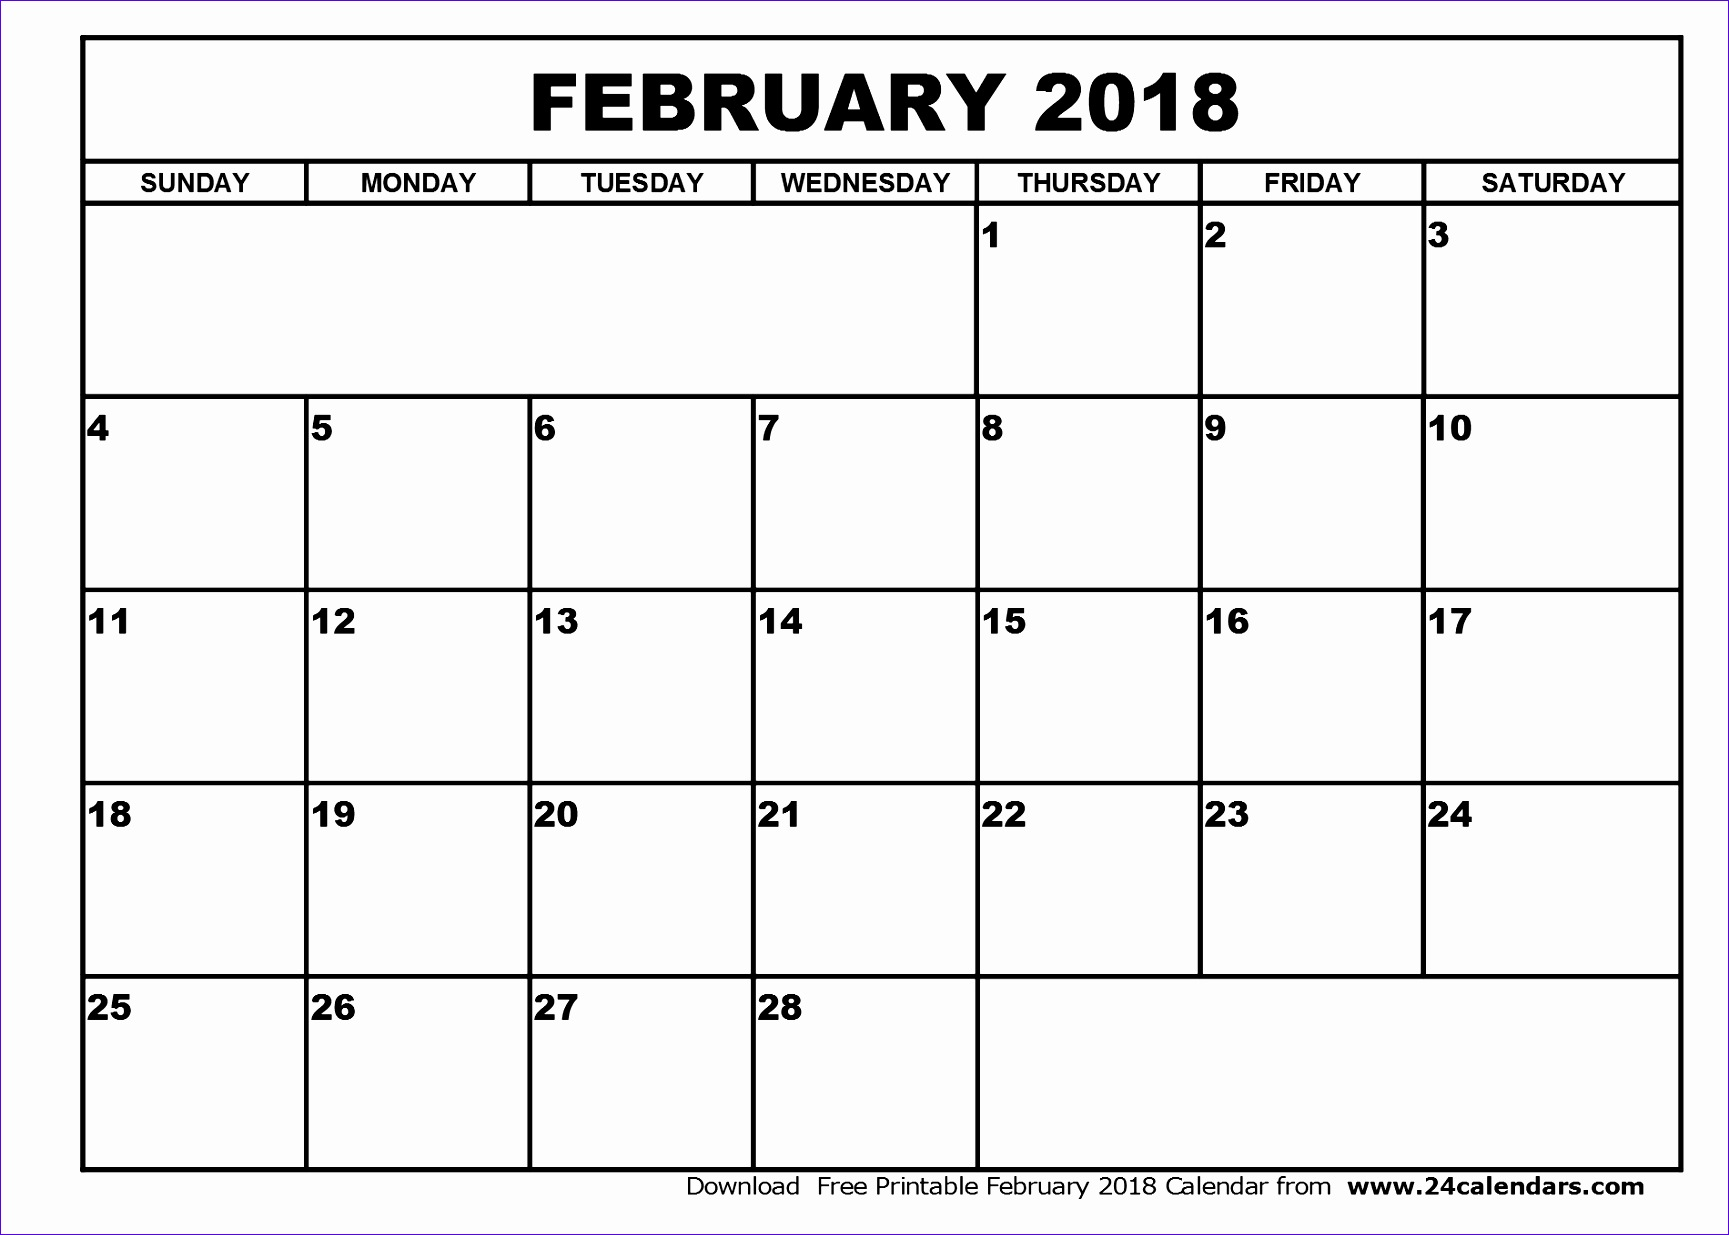 Excel Spending Template Ejqbr Awesome February 2018 Calendar 19001343